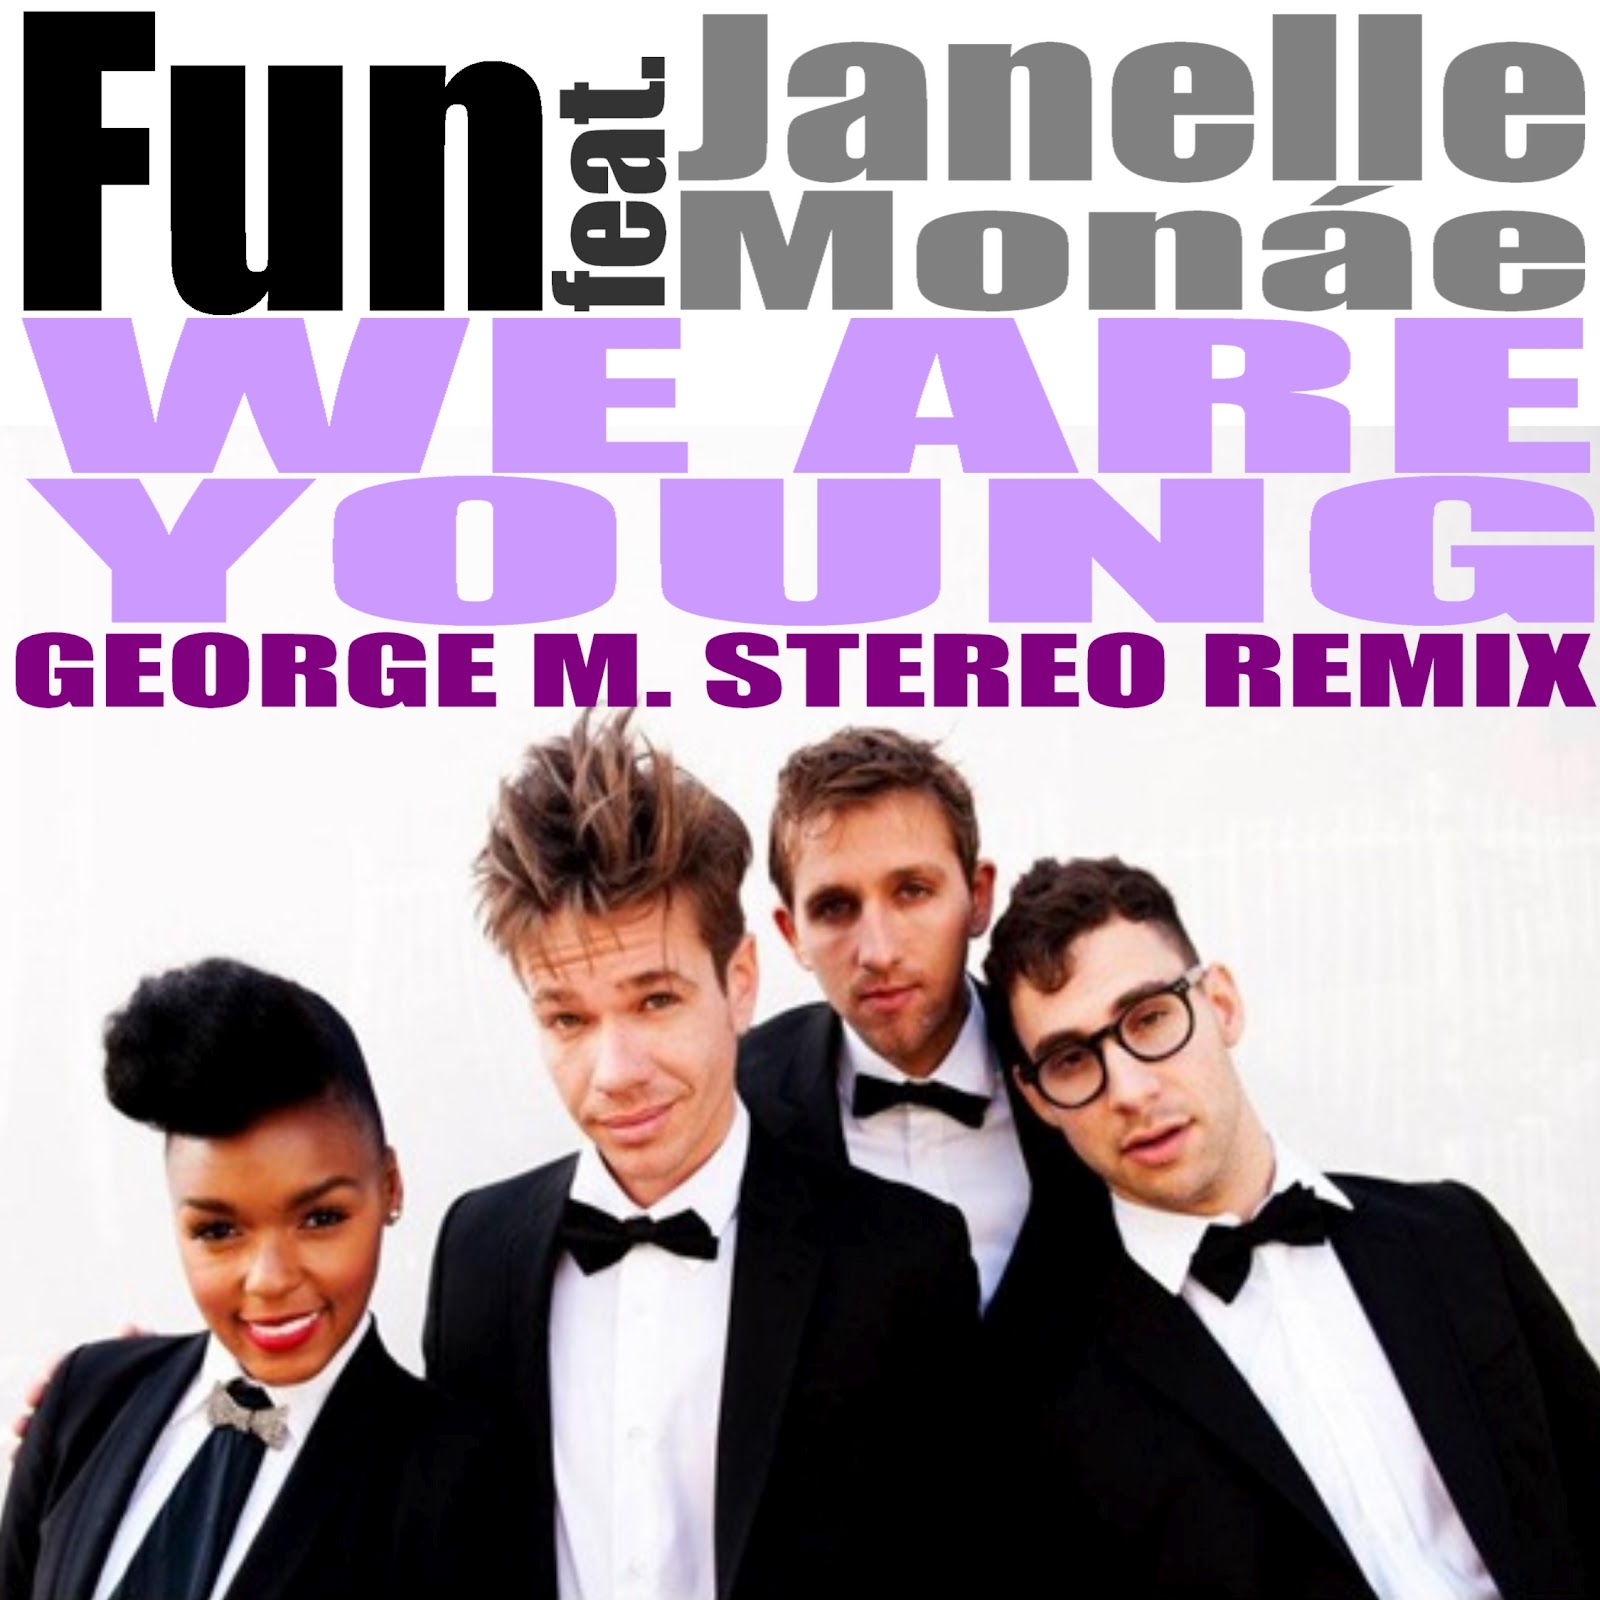 We are young george m stereo remix